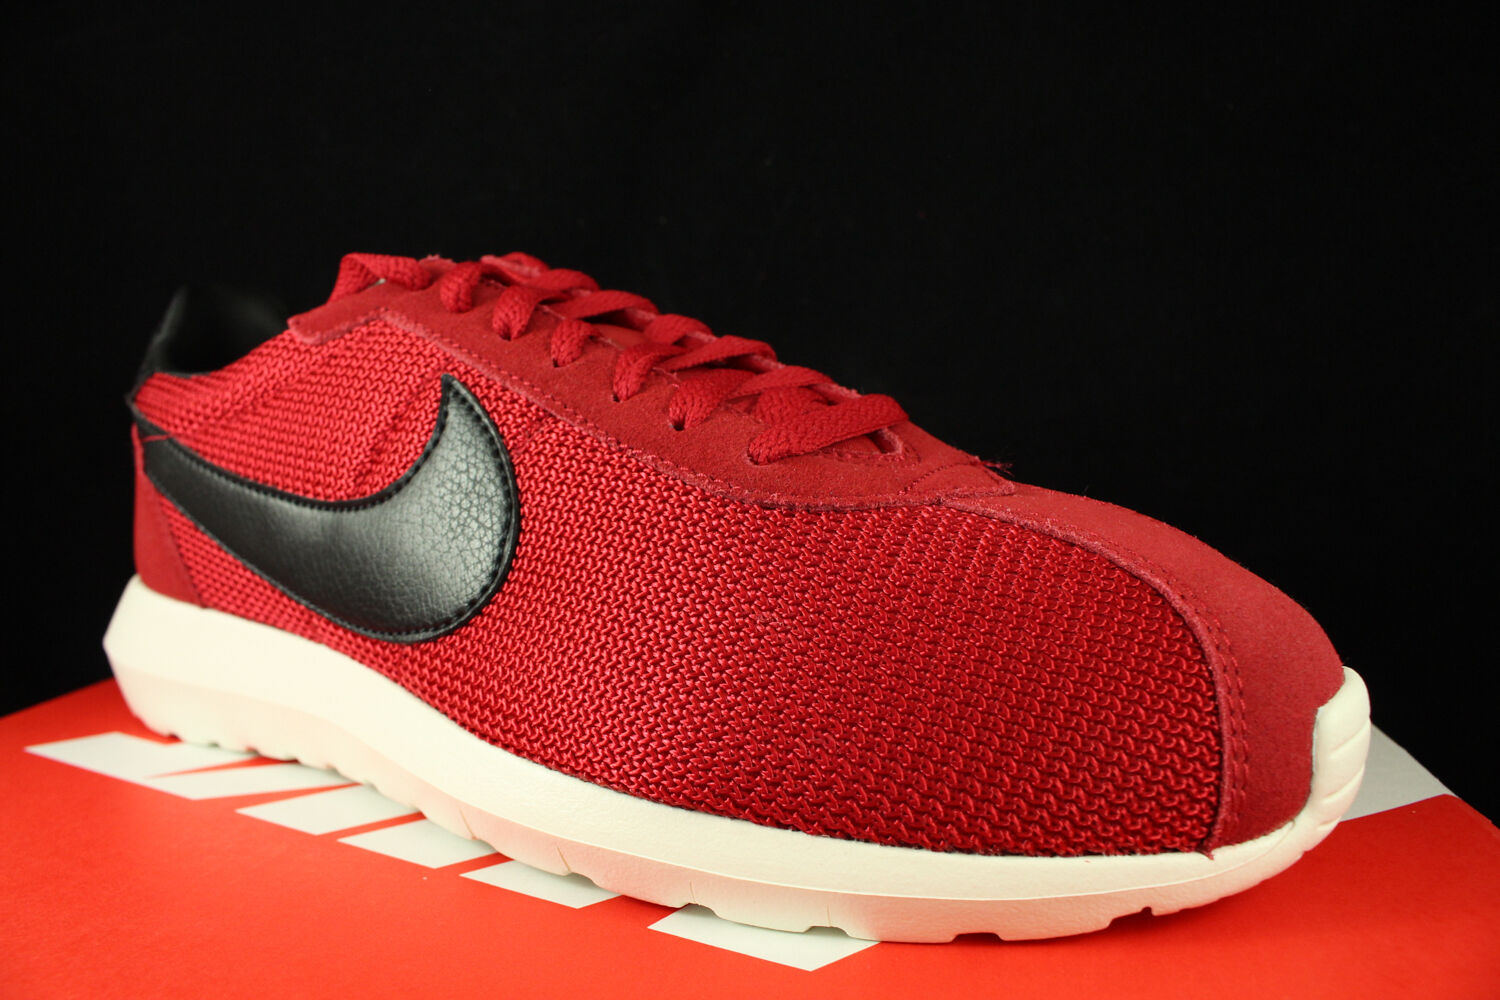 NIKE ROSHE LD 1000 GYM RED BLACK SAIL 844266 601 SZ 10.5